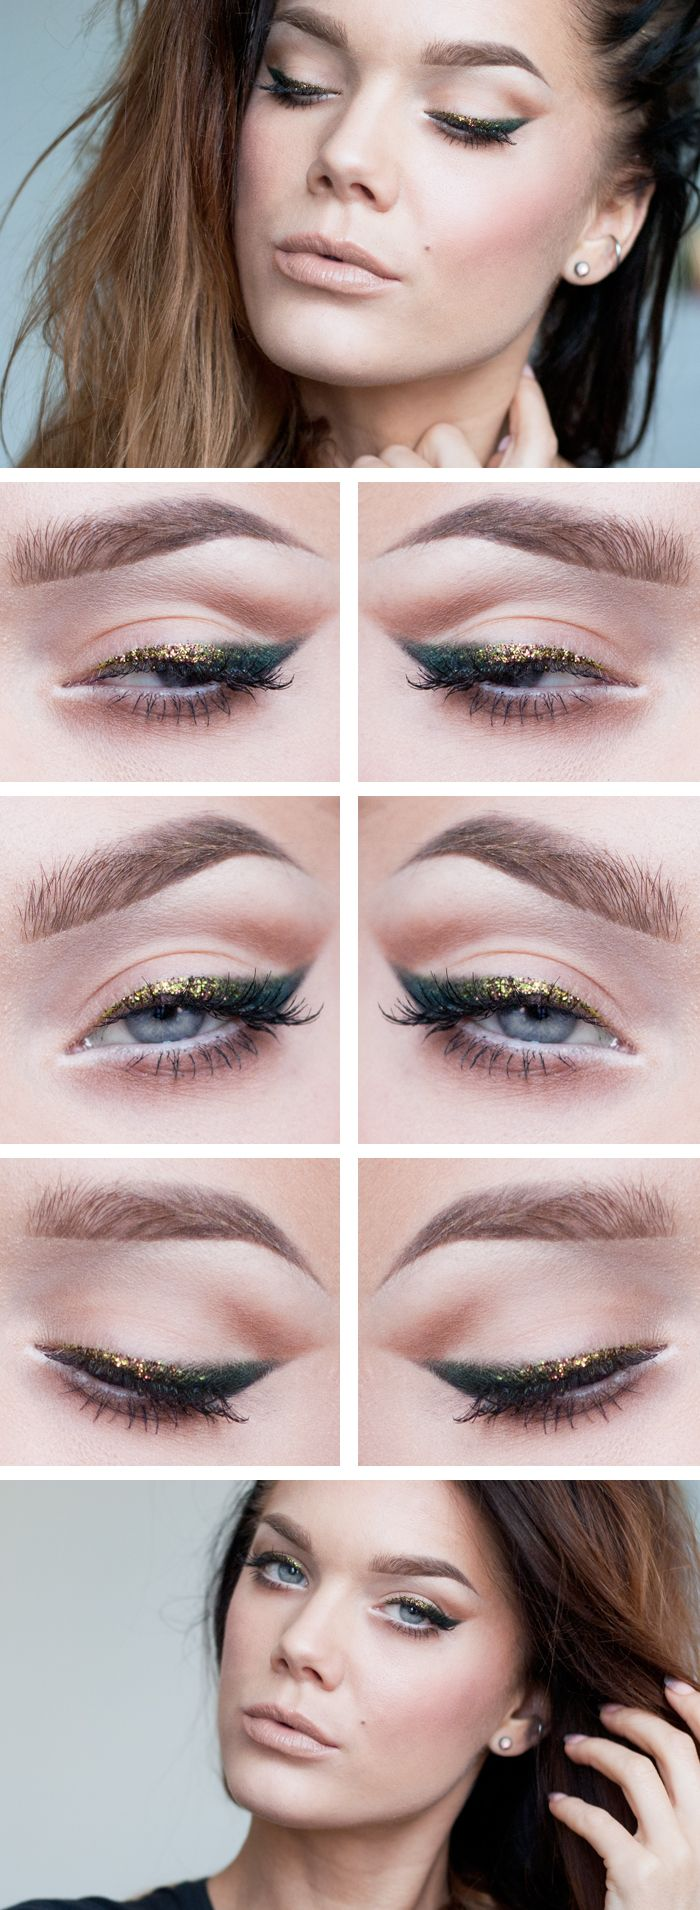 GLITTER LINER ♥ Linda Hallberg - incredible makeup artist. Very inspiring -- from her daily makeup blog. | Inspiration for upcoming projects by Adagio Images at www.adagio-images.com/modeling or www.facebook.com/adagioimages | #makeup #makeupinspiration ♥